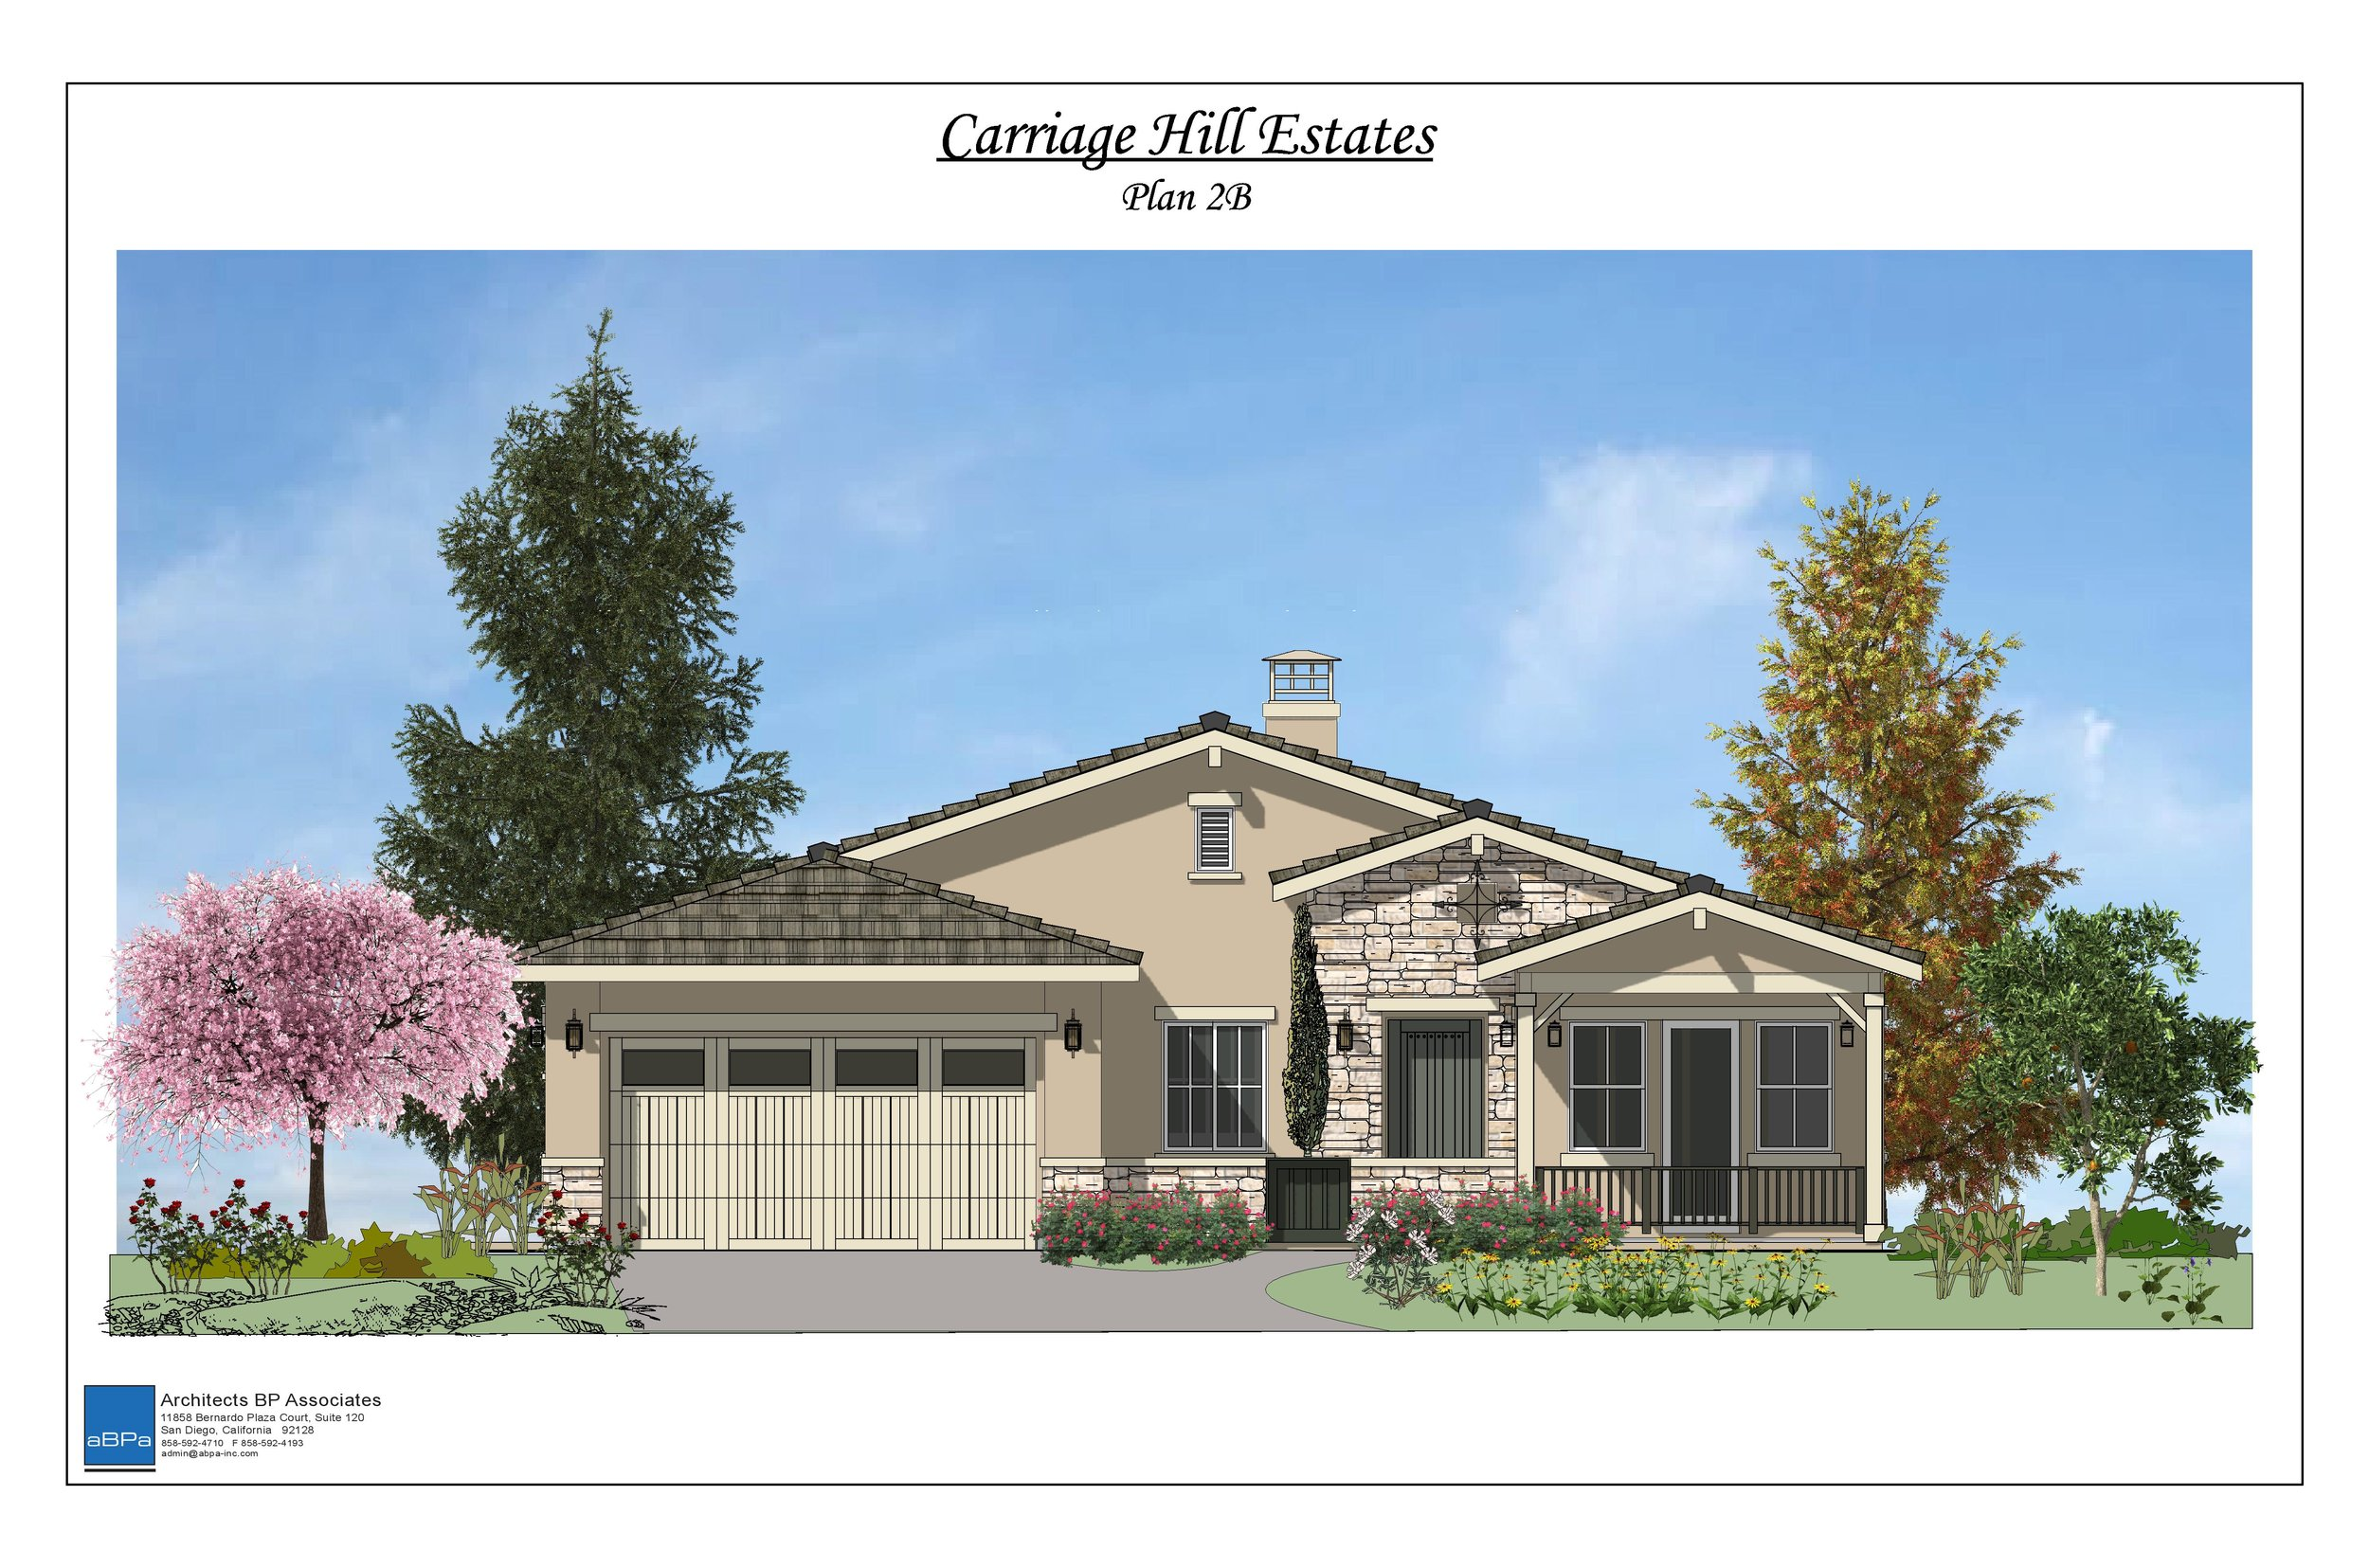 Carriage Hill - Plan 2 Color Elev(040219)-page-002.jpg